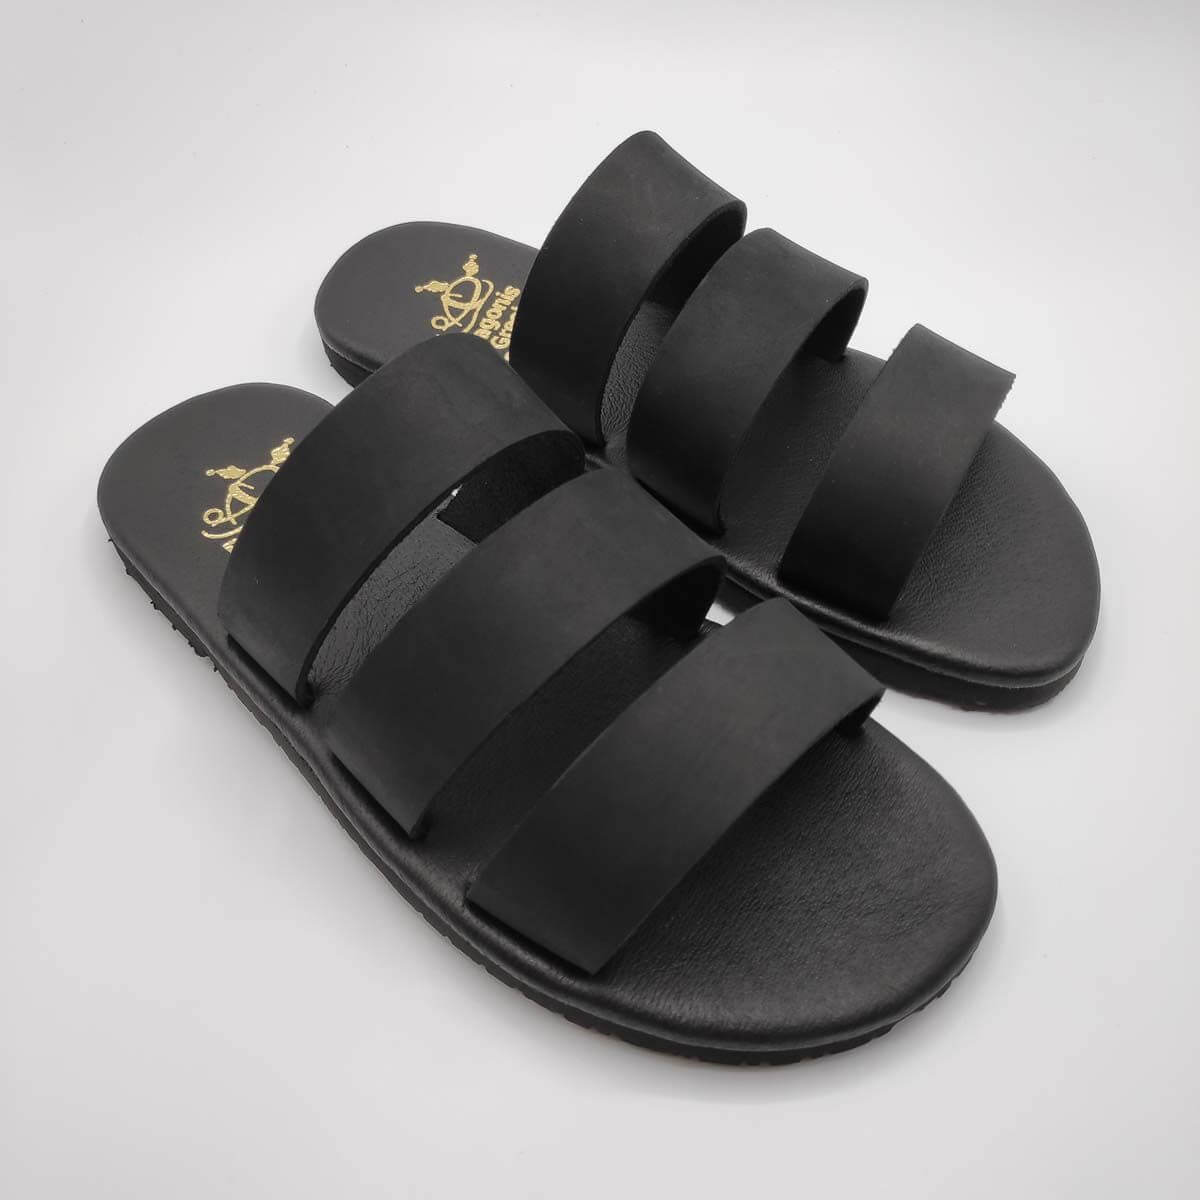 Three Straps Mens Leather Sandals Black Comfort Sandals side view 2